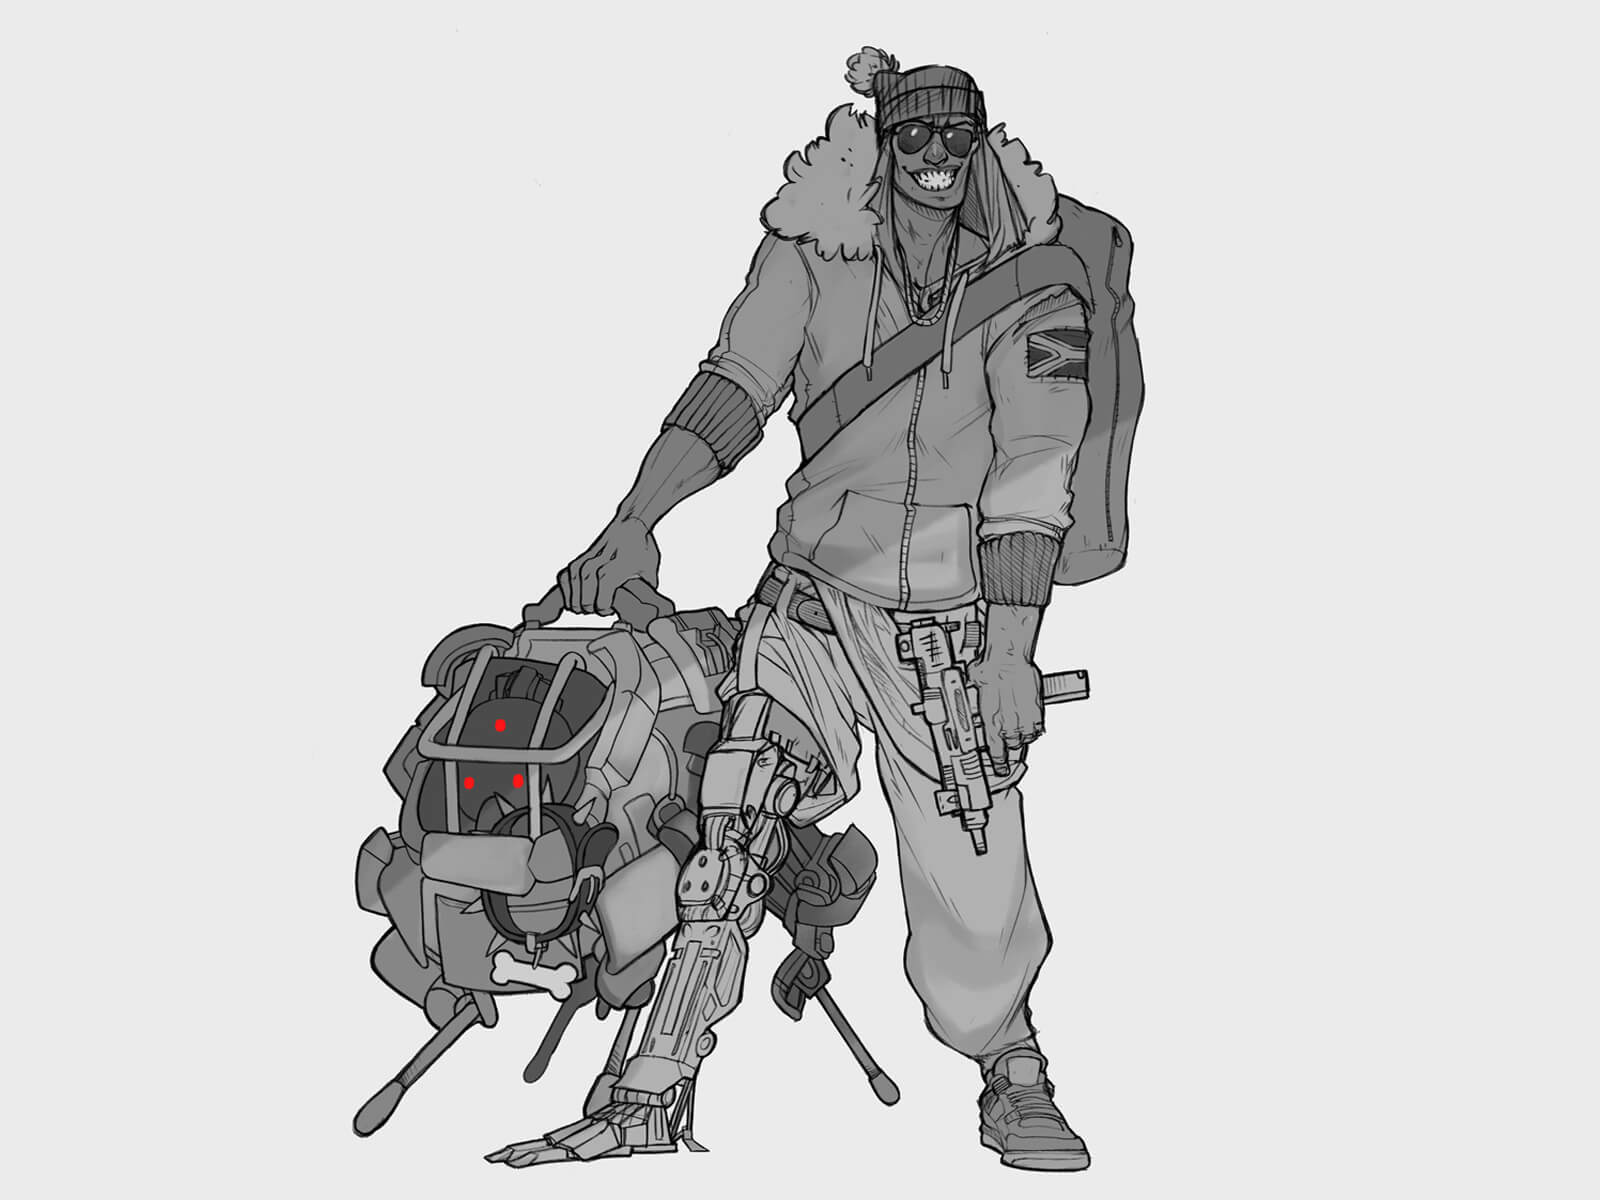 digital painting of a grinning man with a robotic leg and a large robot dog